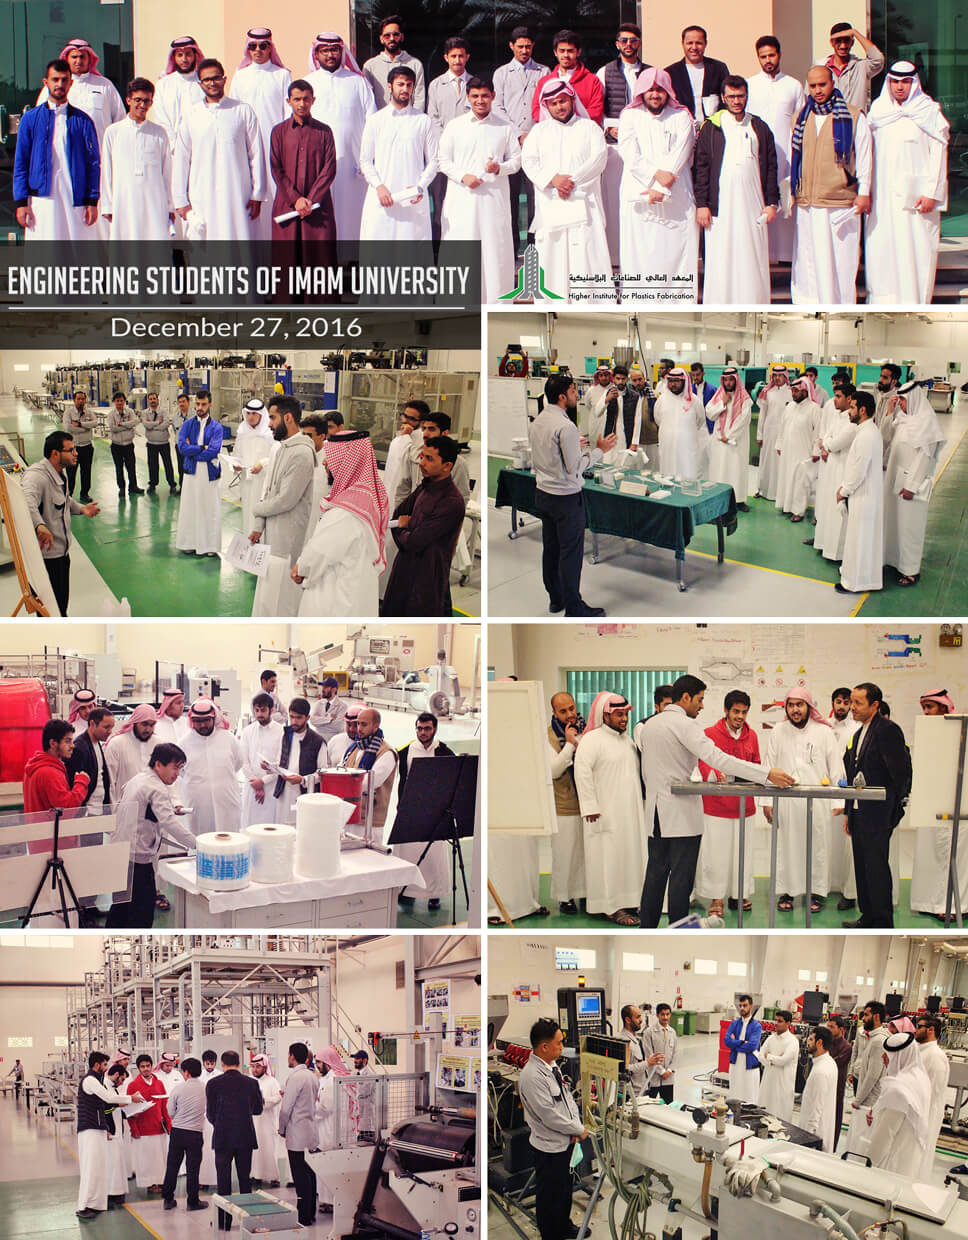 HIPF Welcomes visitors of Engineering students from Imam University.